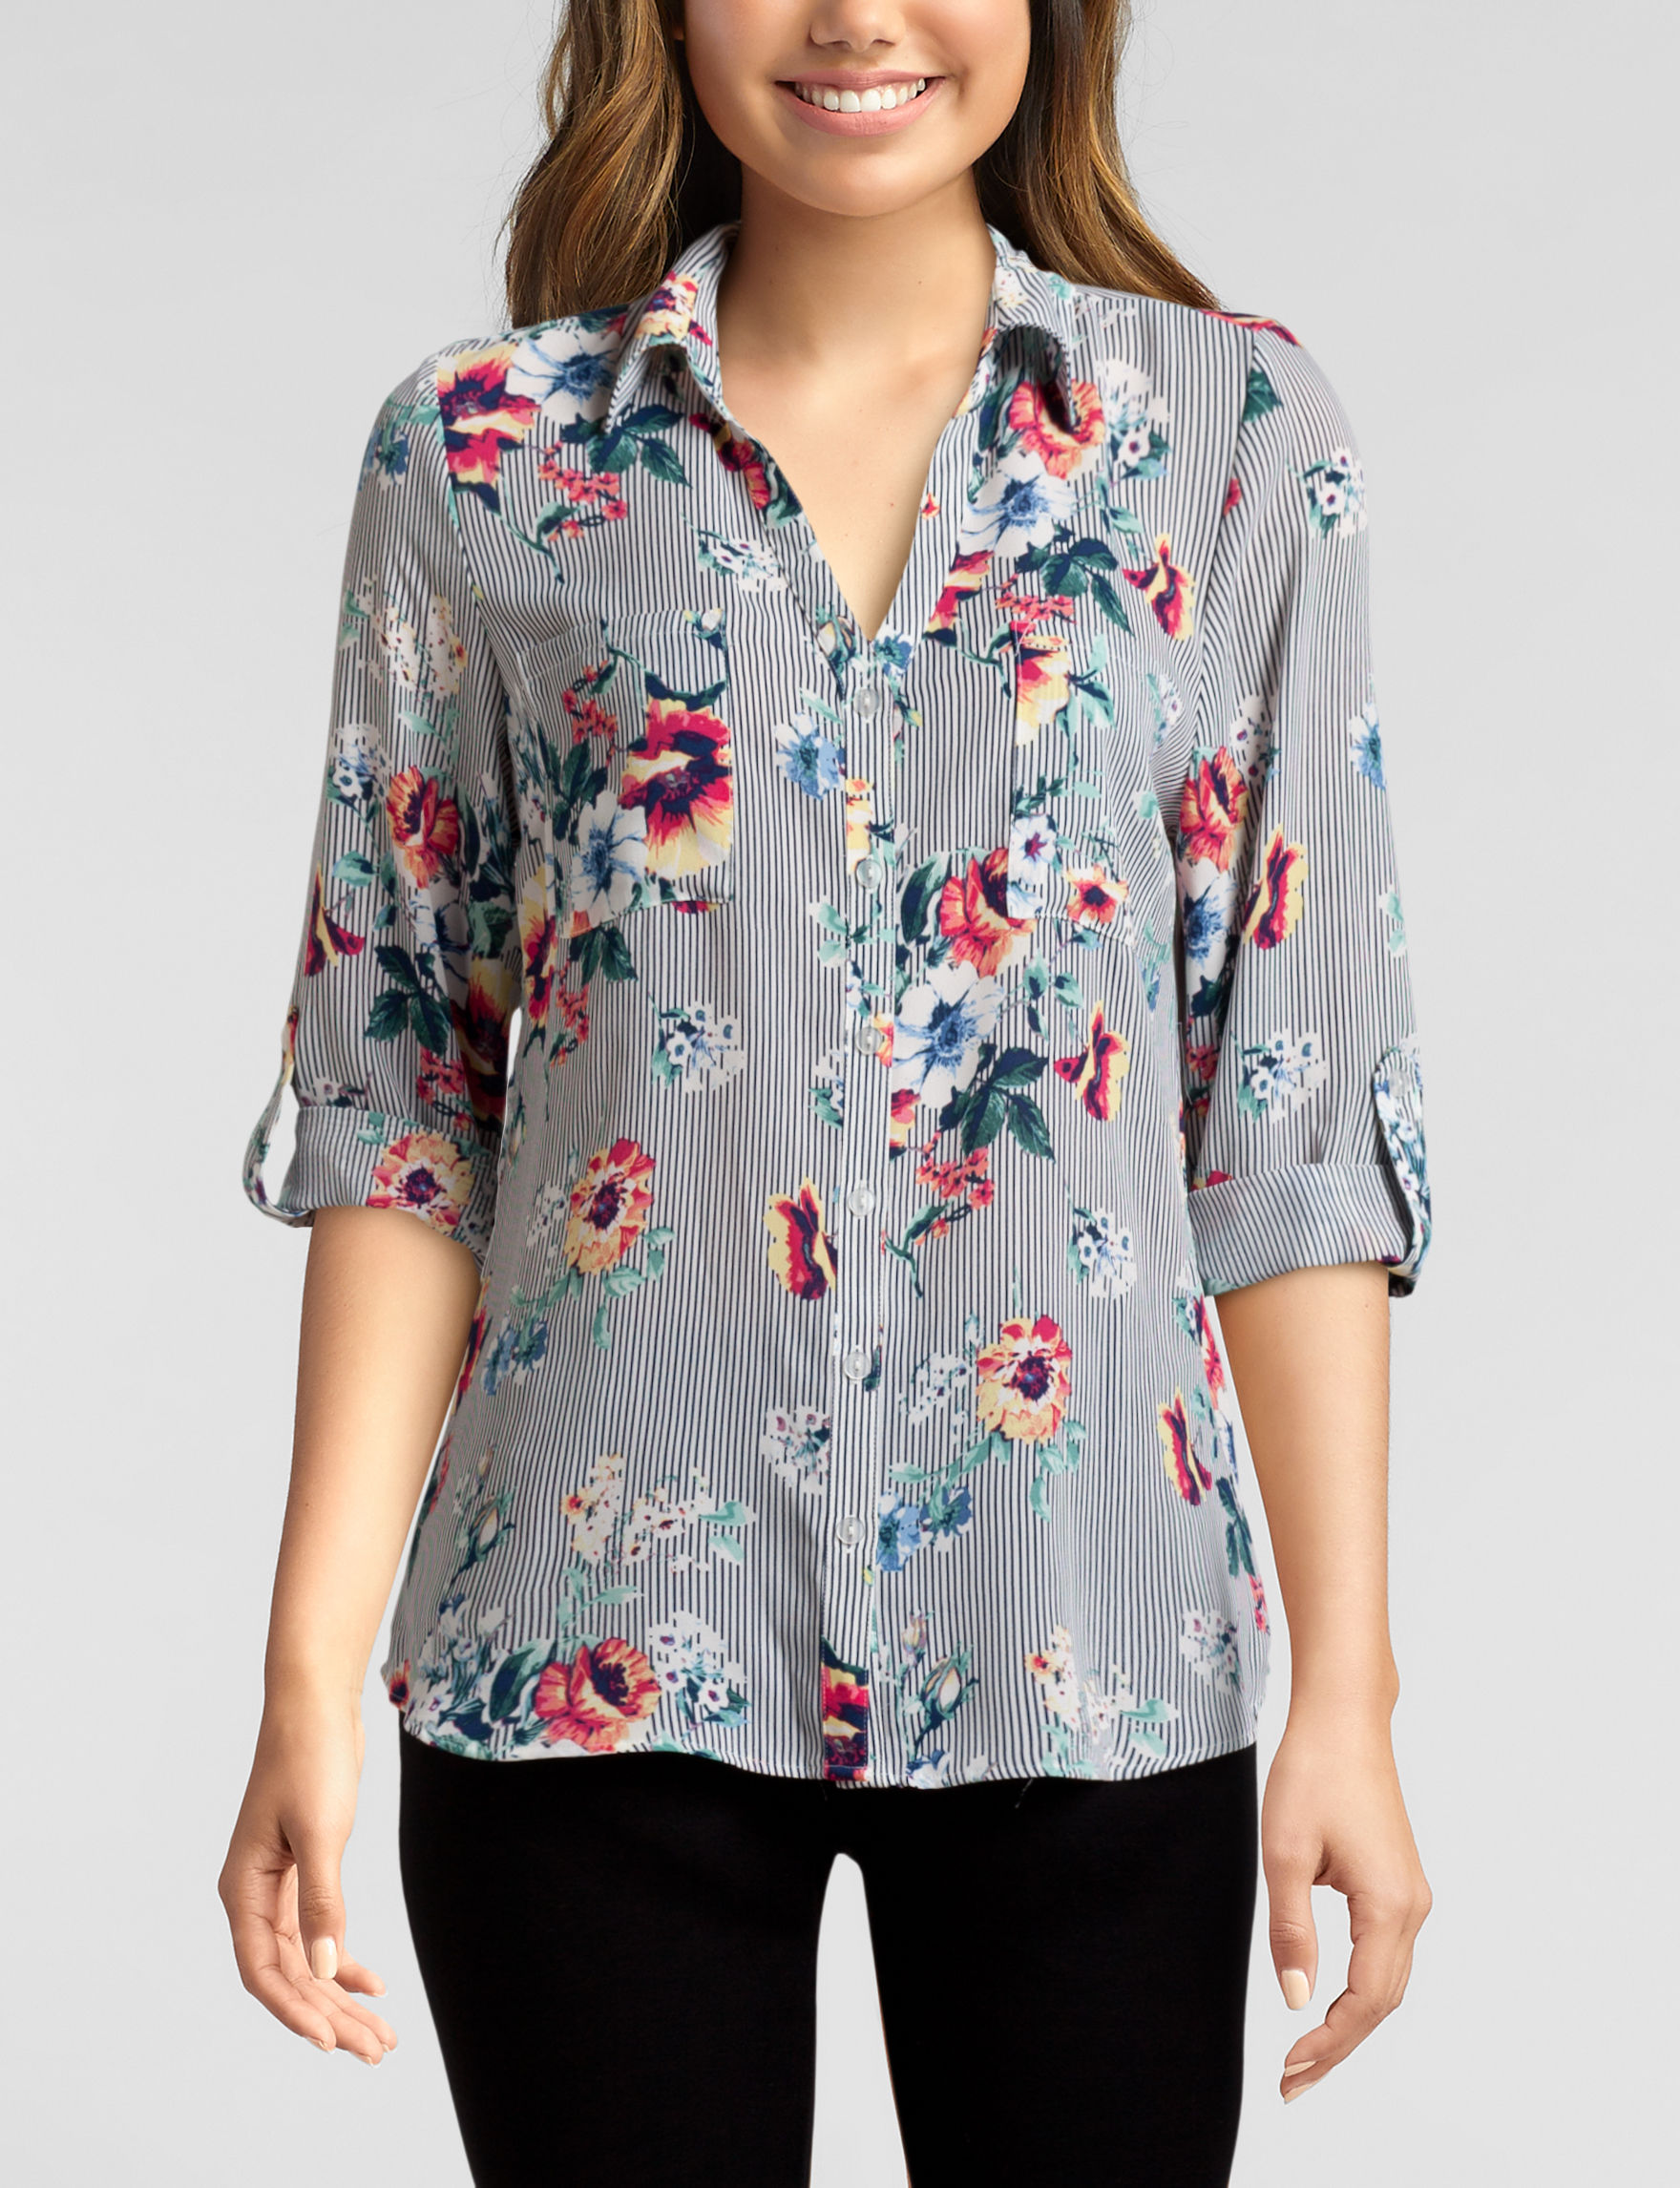 A. Byer White Floral Everyday & Casual Shirts & Blouses